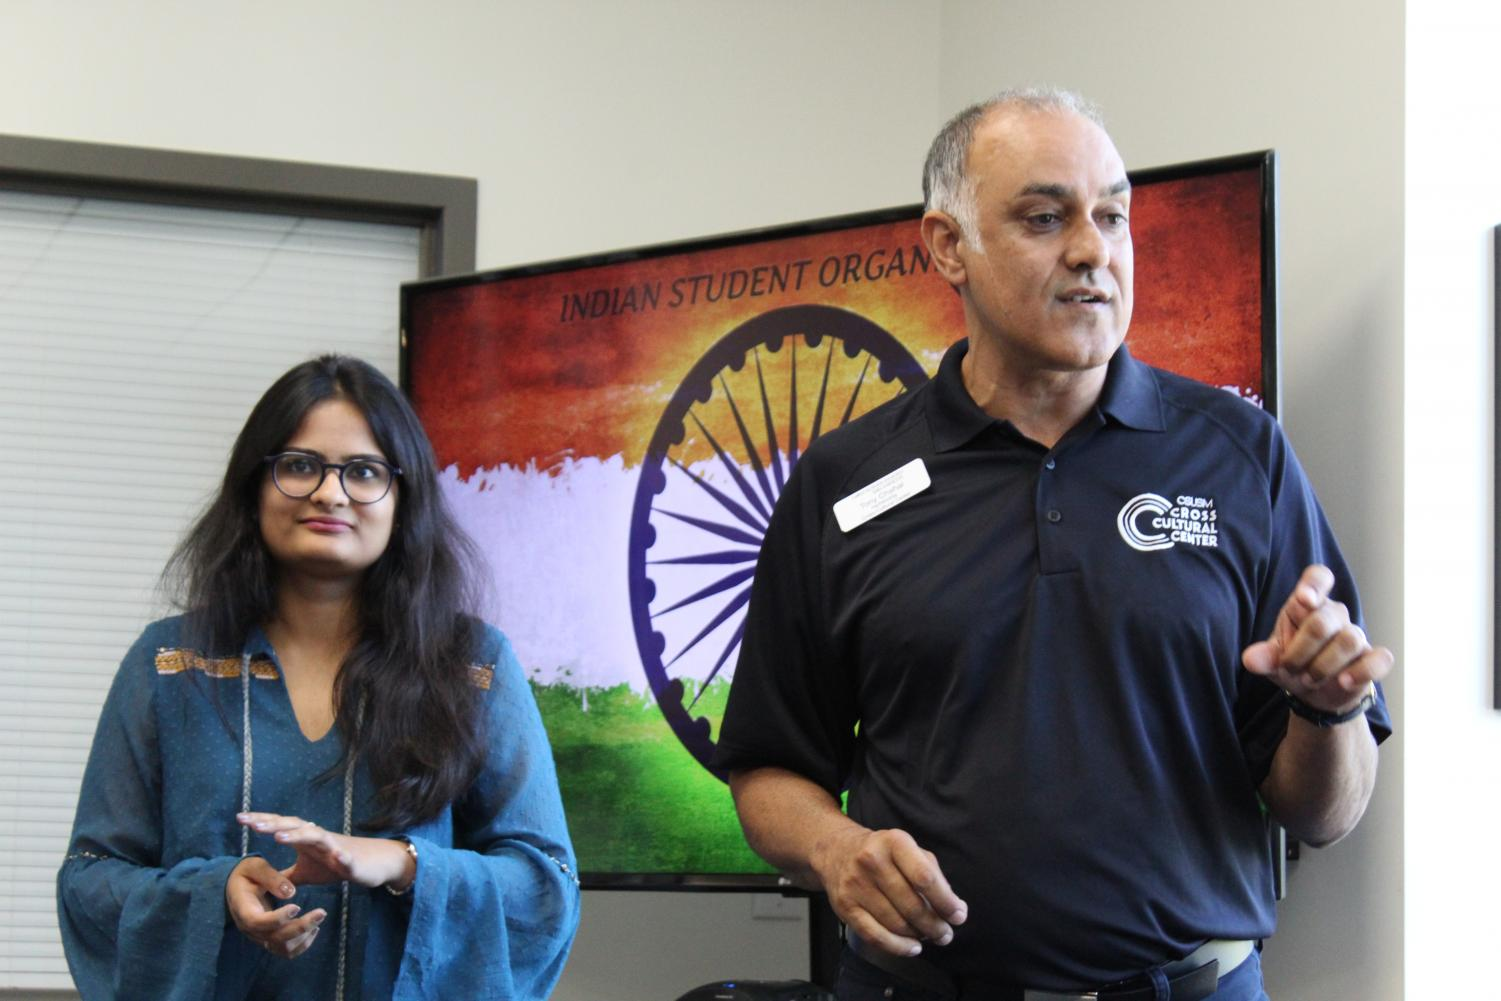 Devanshi Upadhyaya (left) and Tony Chahal (right) share various aspects of their Indian culture at the Cross-Cultural Center.